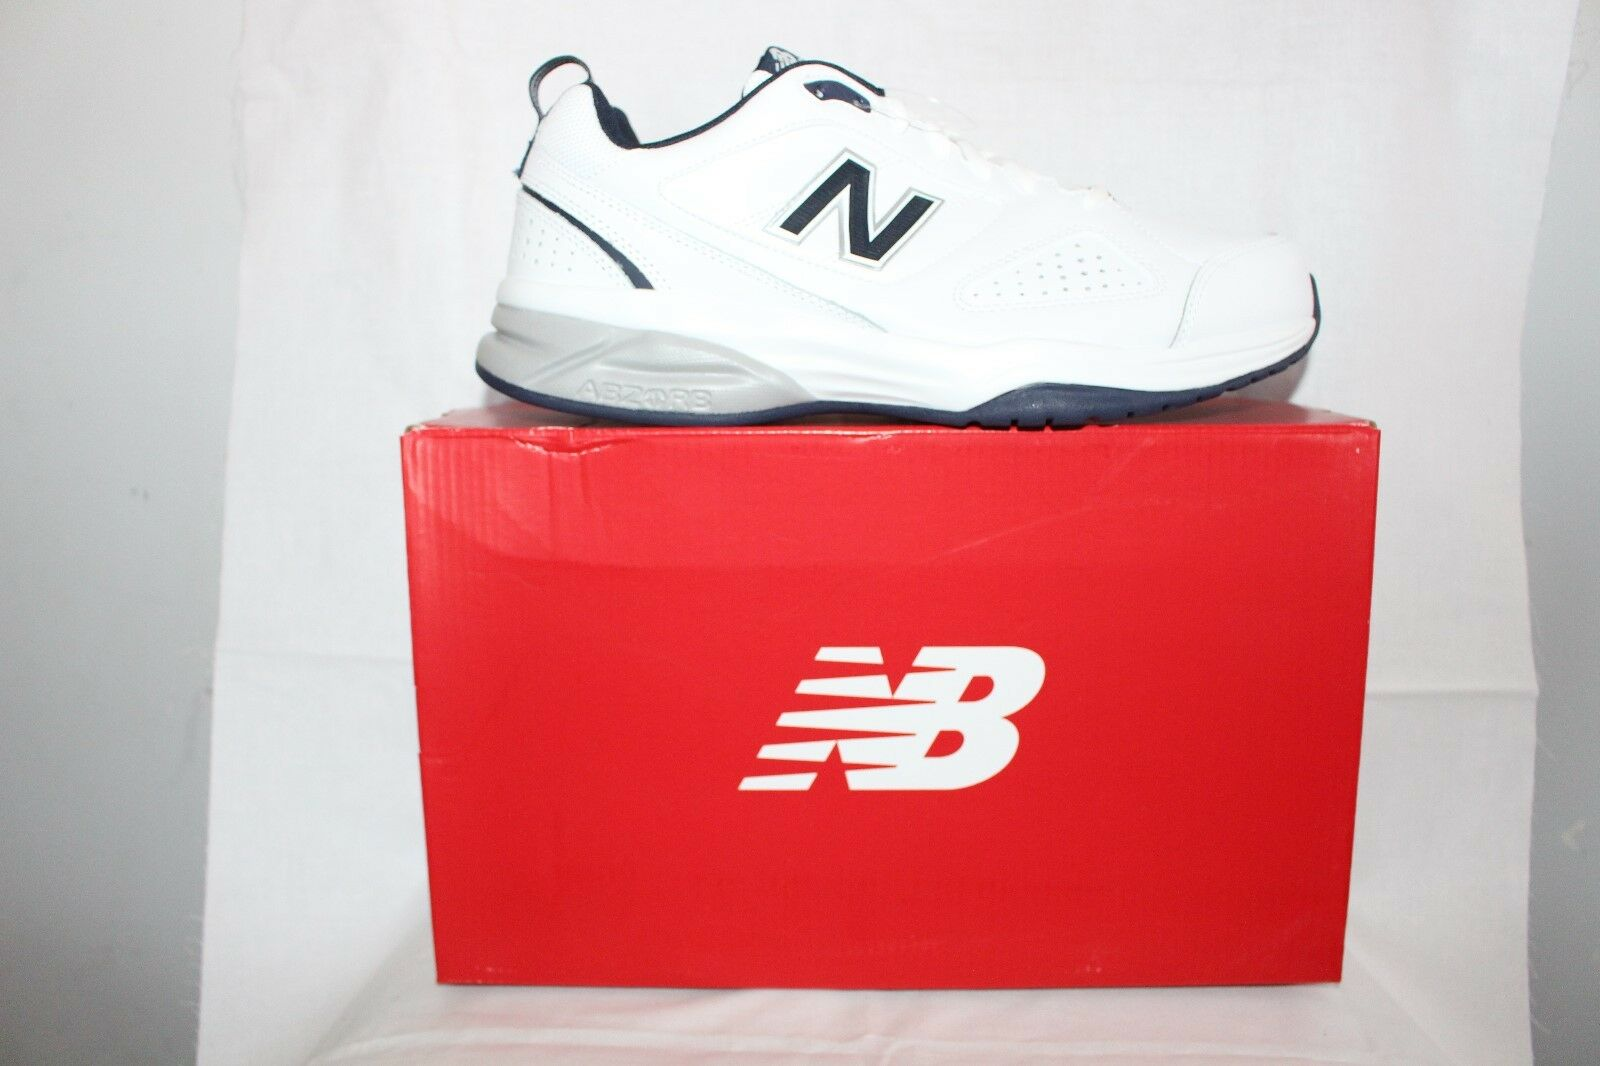 MENS zapatos FOOTWEAR - New Balance Joggers MX624 blanco 2E width